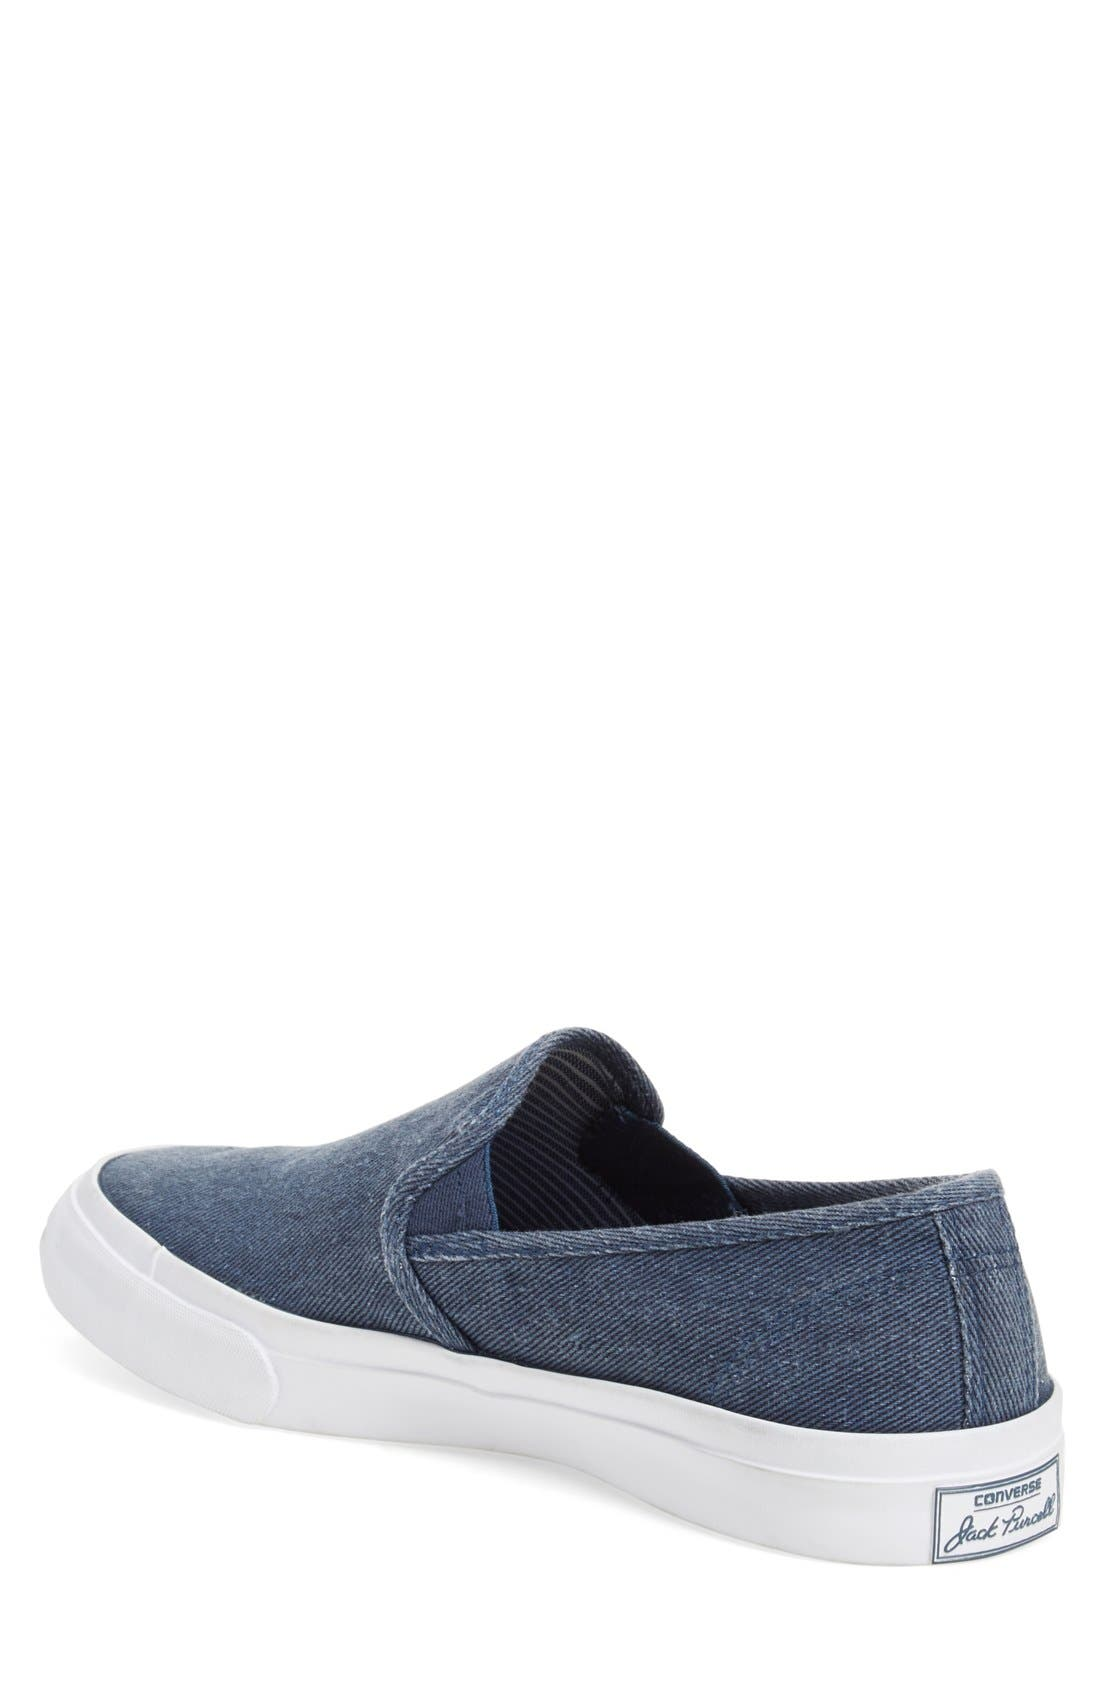 Jack Purcell II Slip-On,                             Alternate thumbnail 6, color,